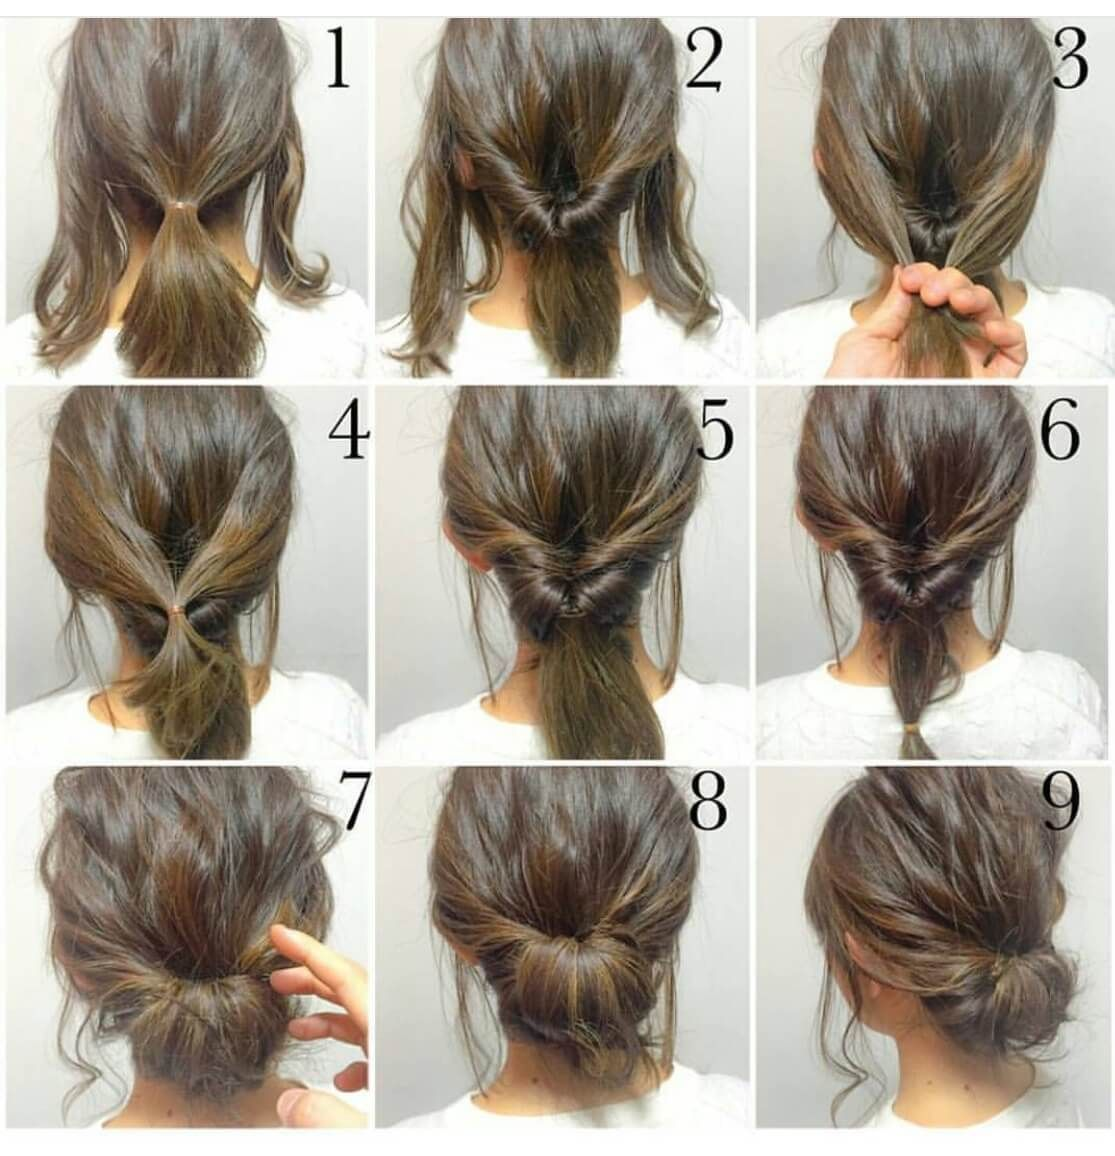 most popular step by step hairstyle tutorials hairstyles